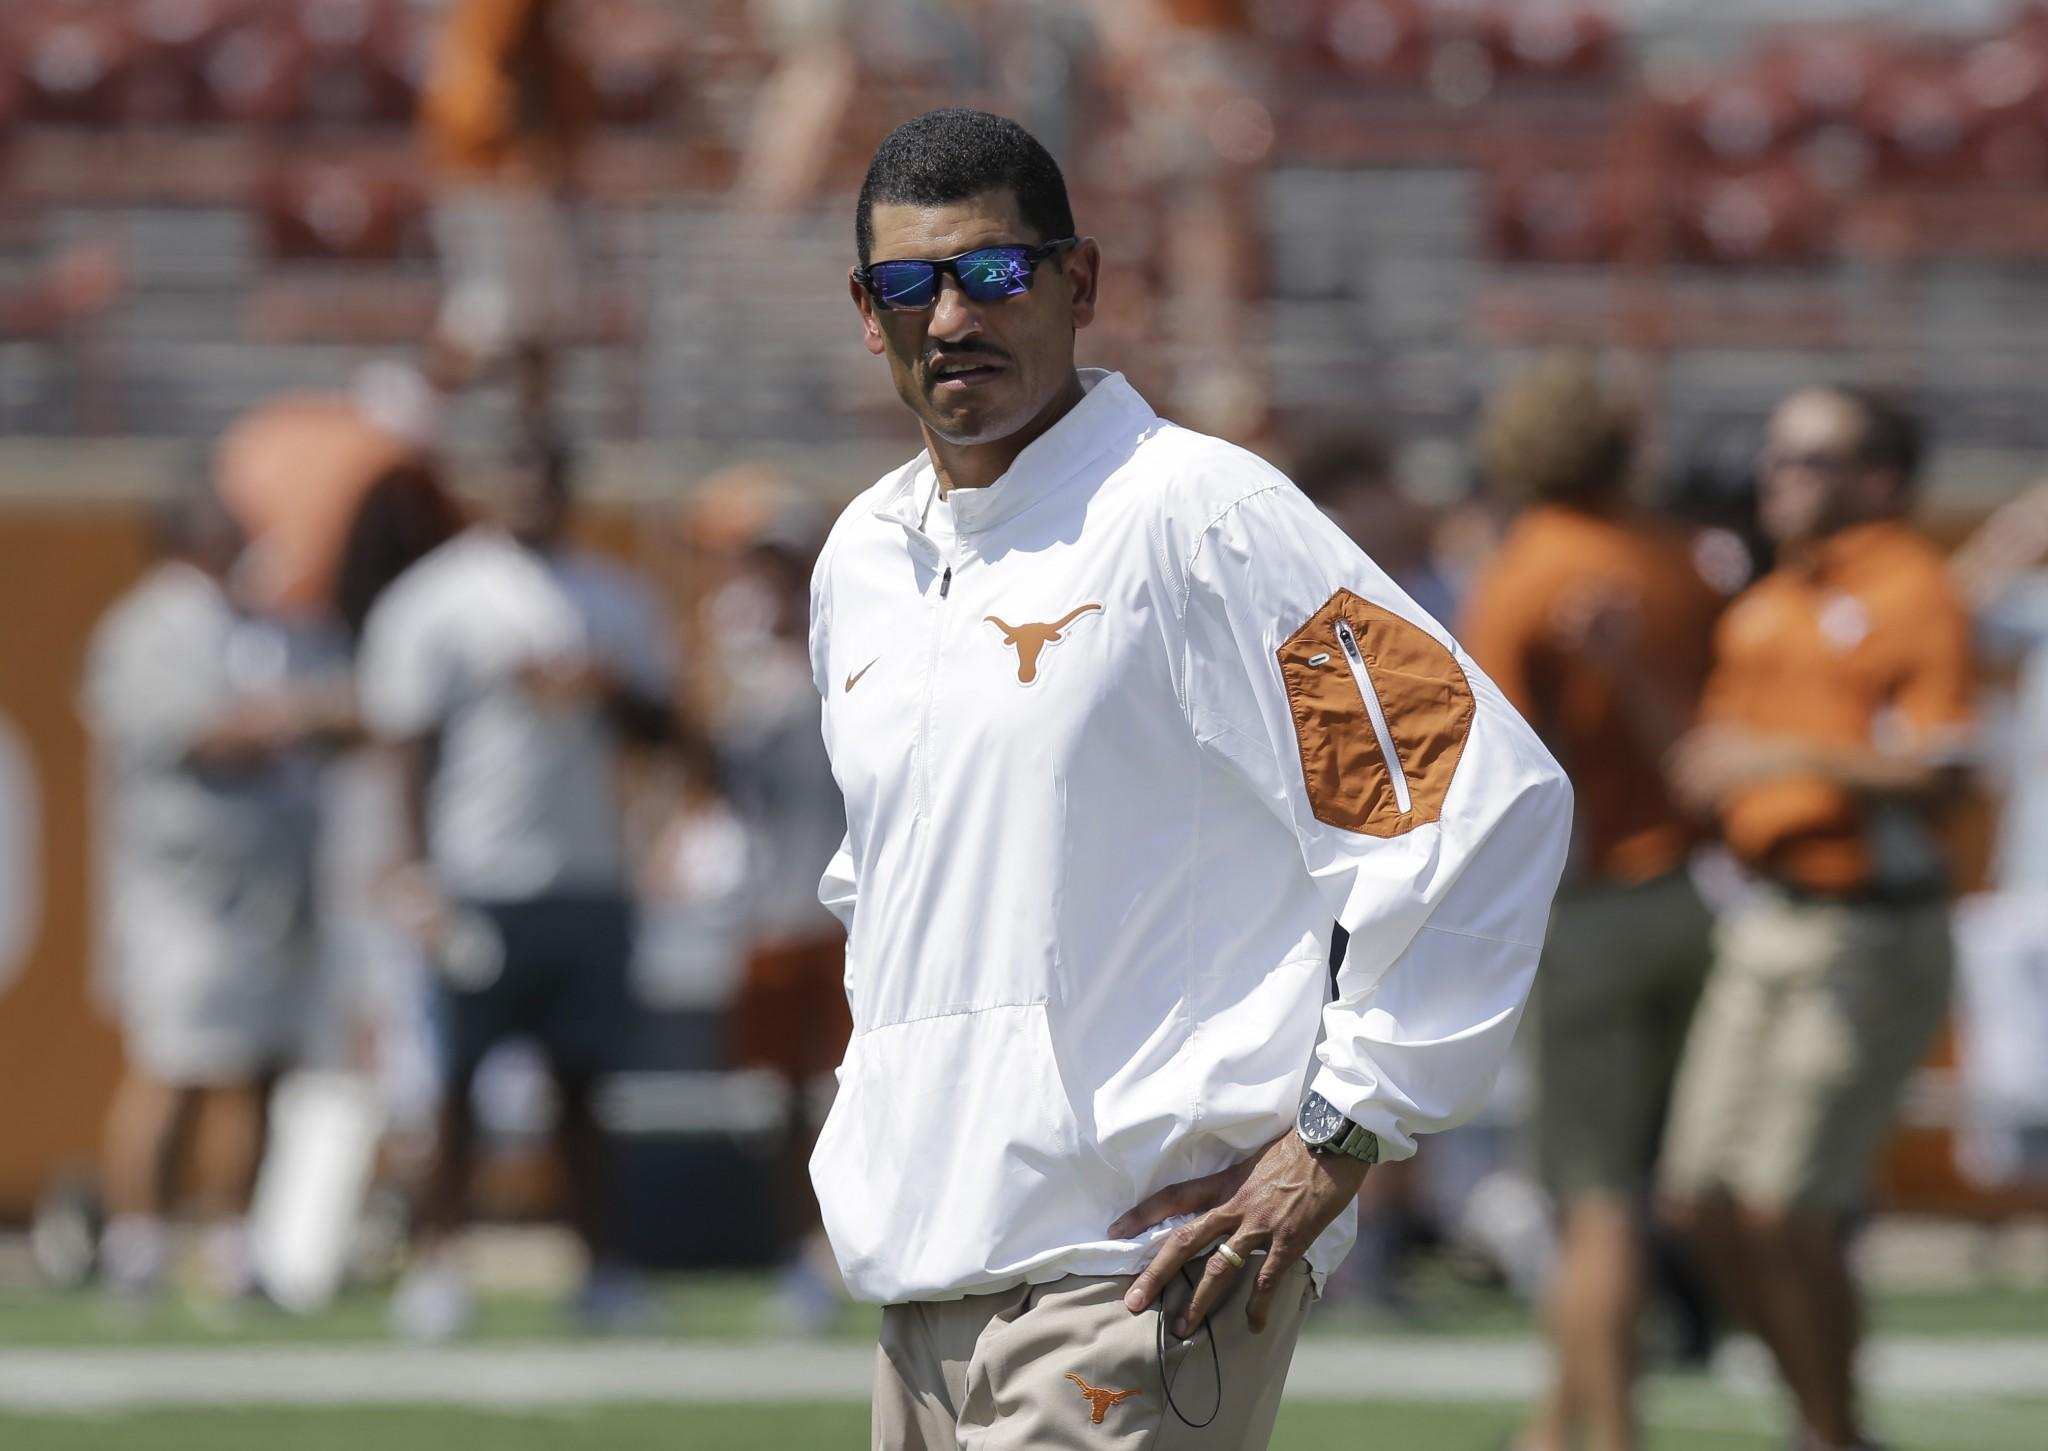 Nevada hires Arizona State assistant Jay Norvell as head coach